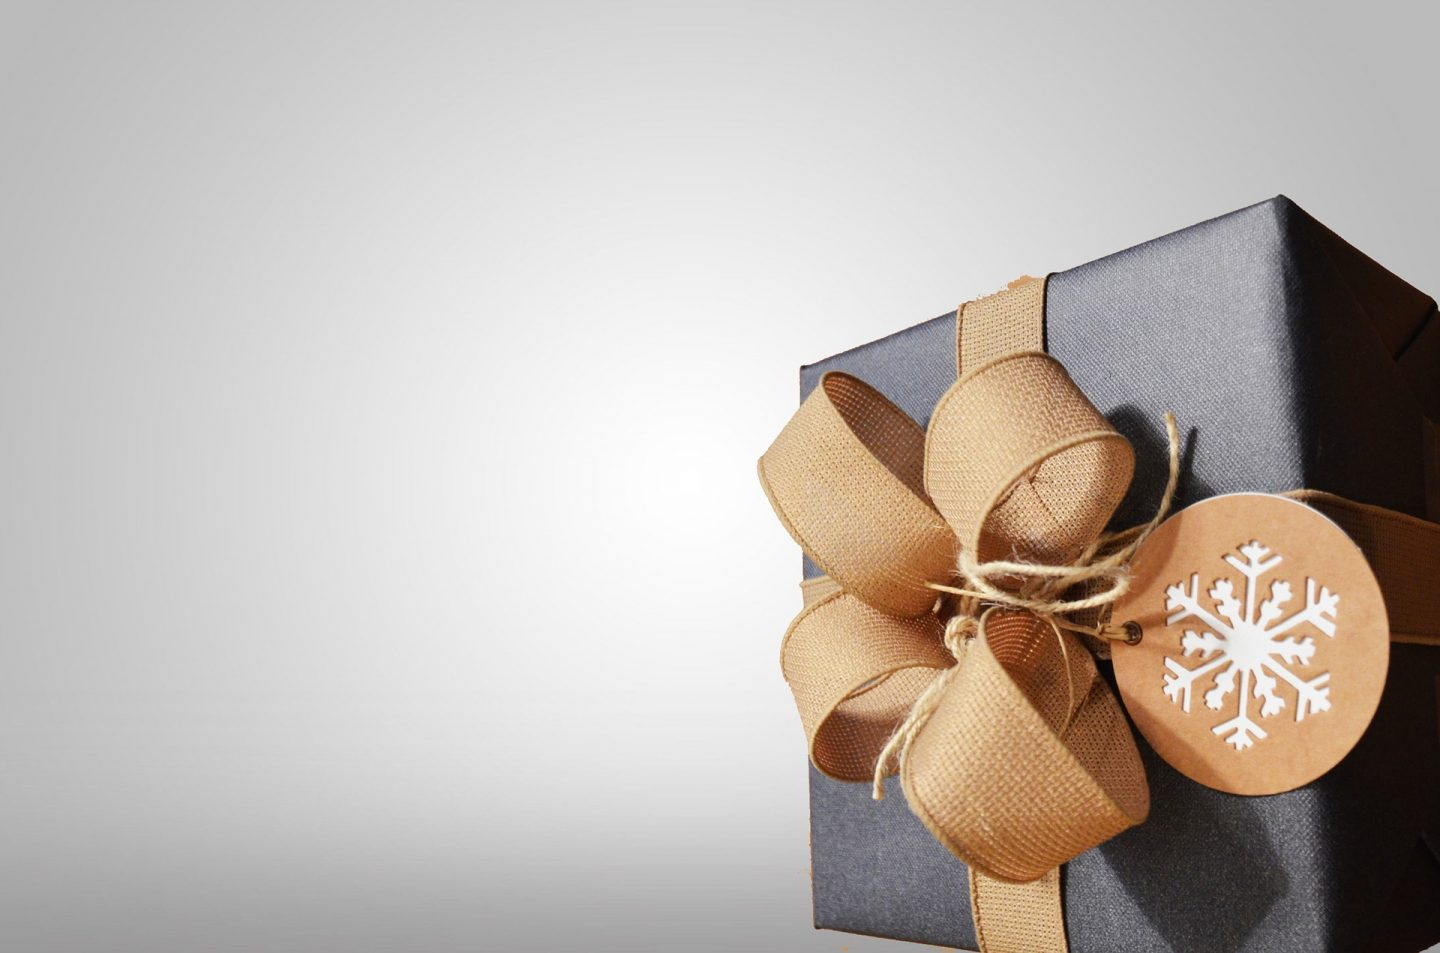 5 INTERESTING AND CREATIVE WAYS TO SPRUCE UP YOUR CUSTOM PACKAGING